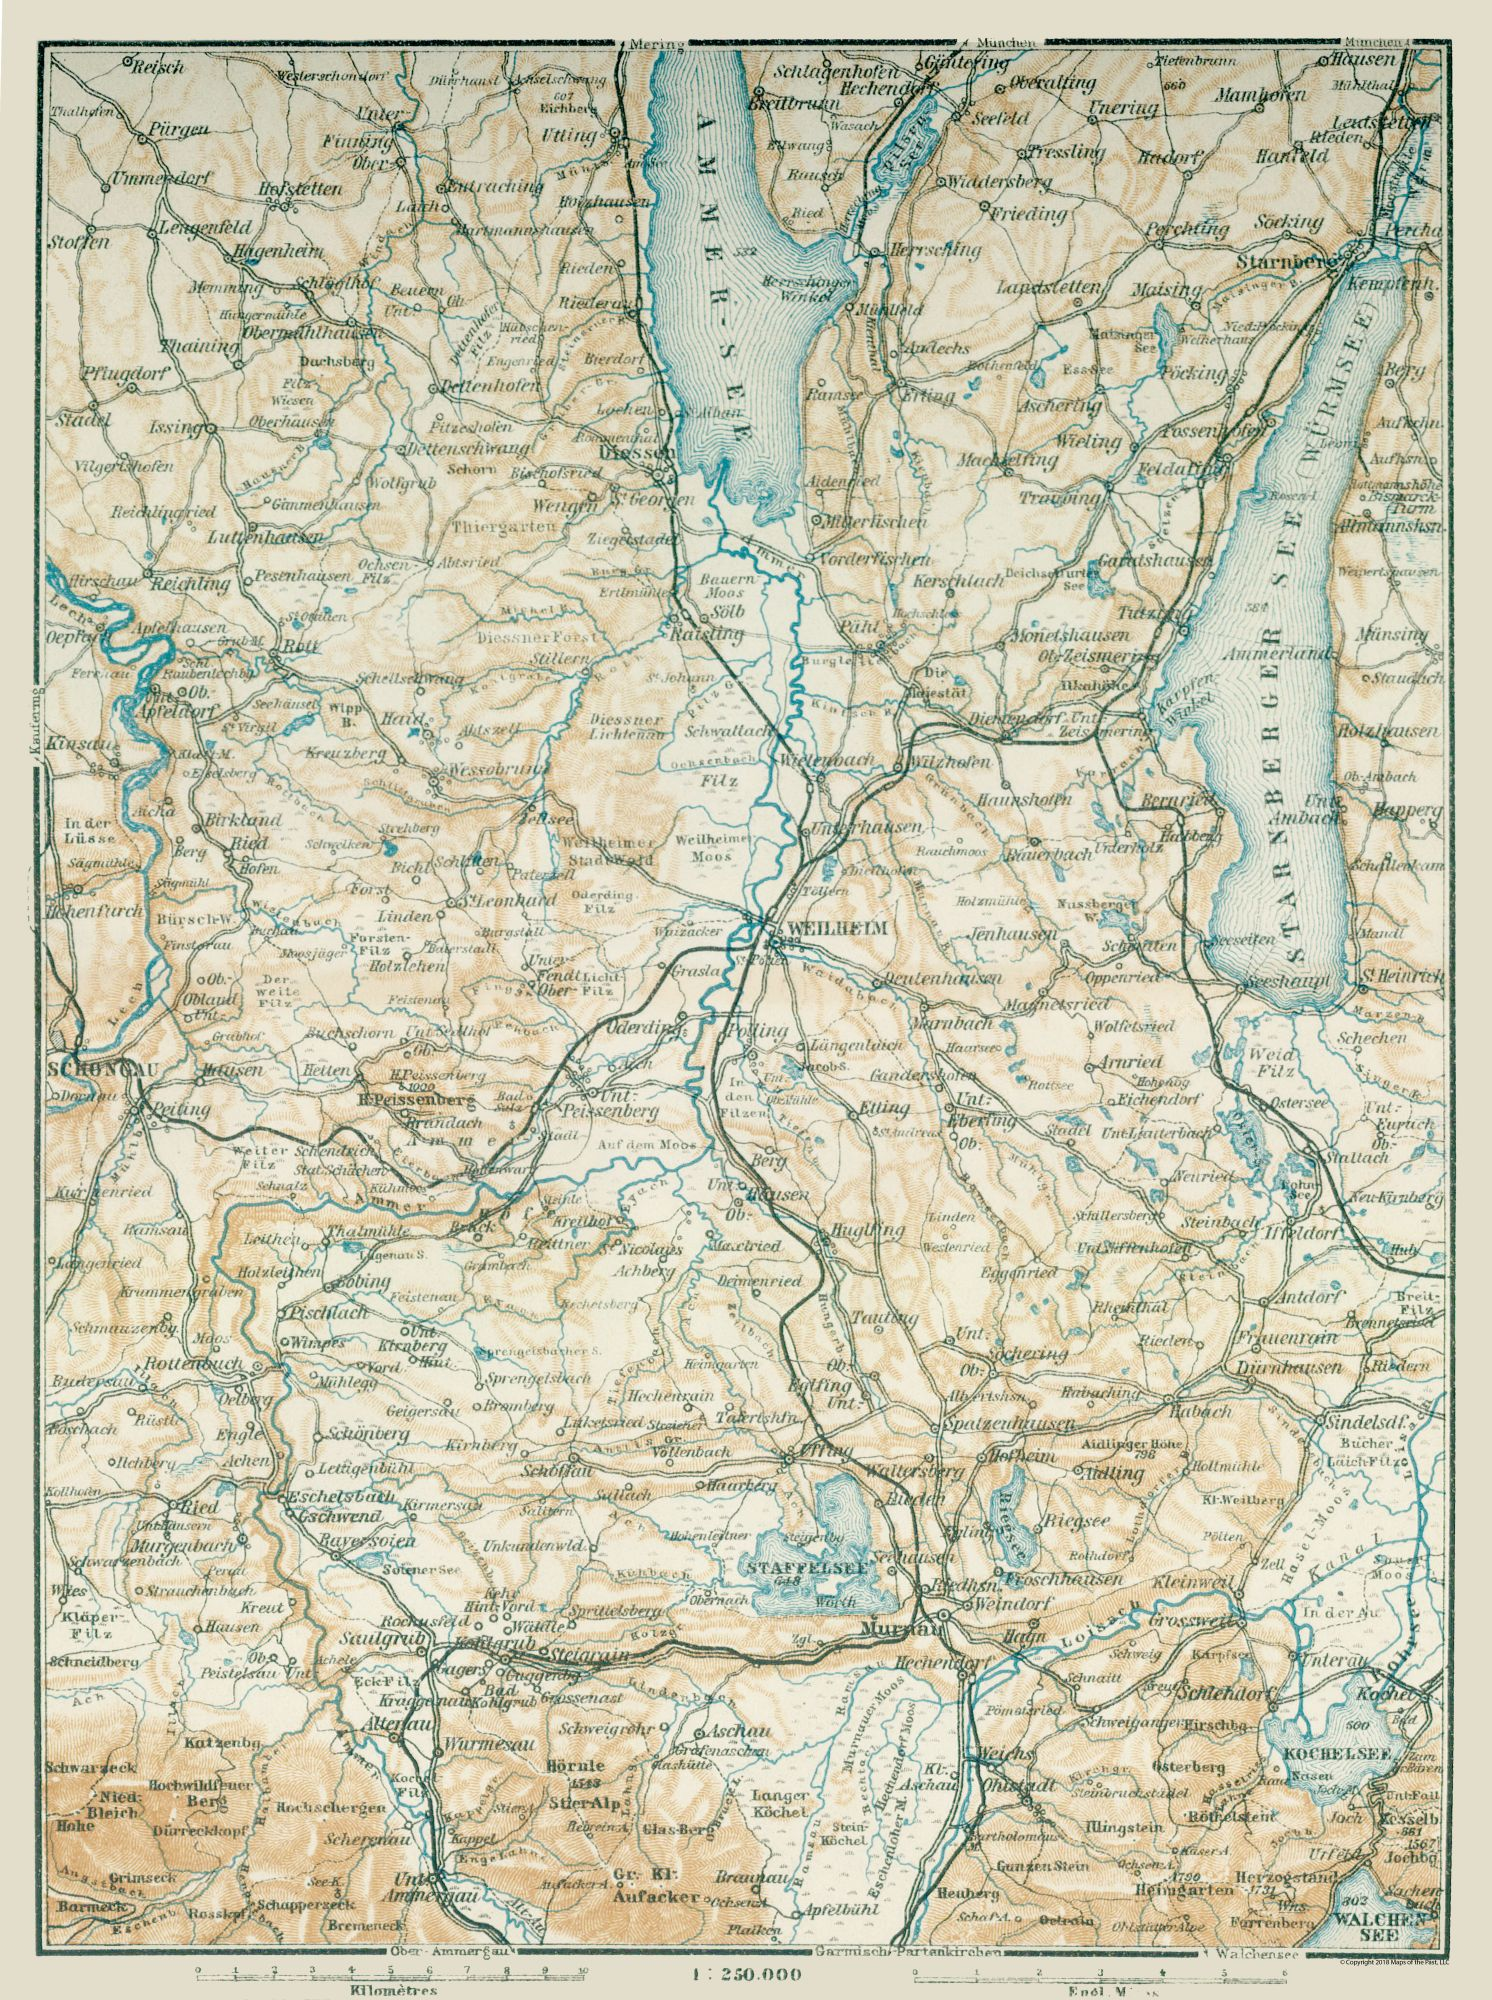 Map Of Germany In 1914.Old International Maps South Germany Baedeker 1914 23 00 X 30 83